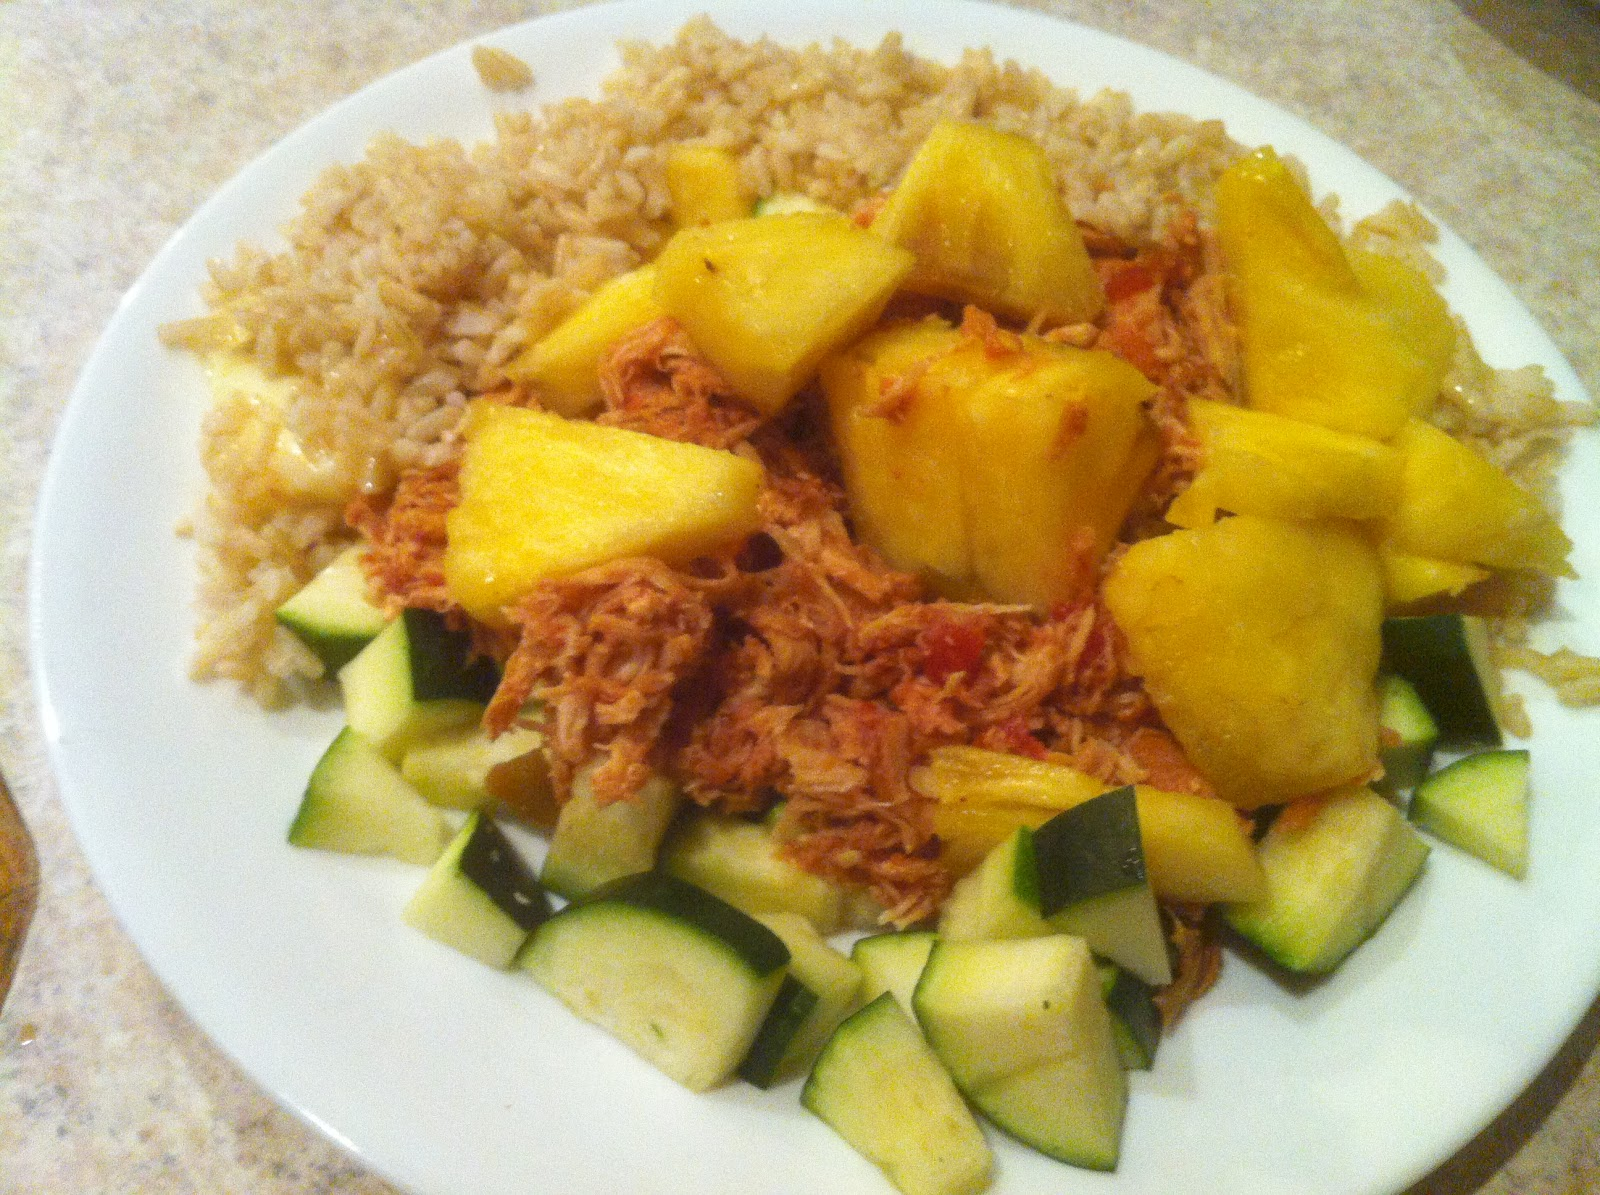 My Journey: Slow Cooker Pineapple Chicken